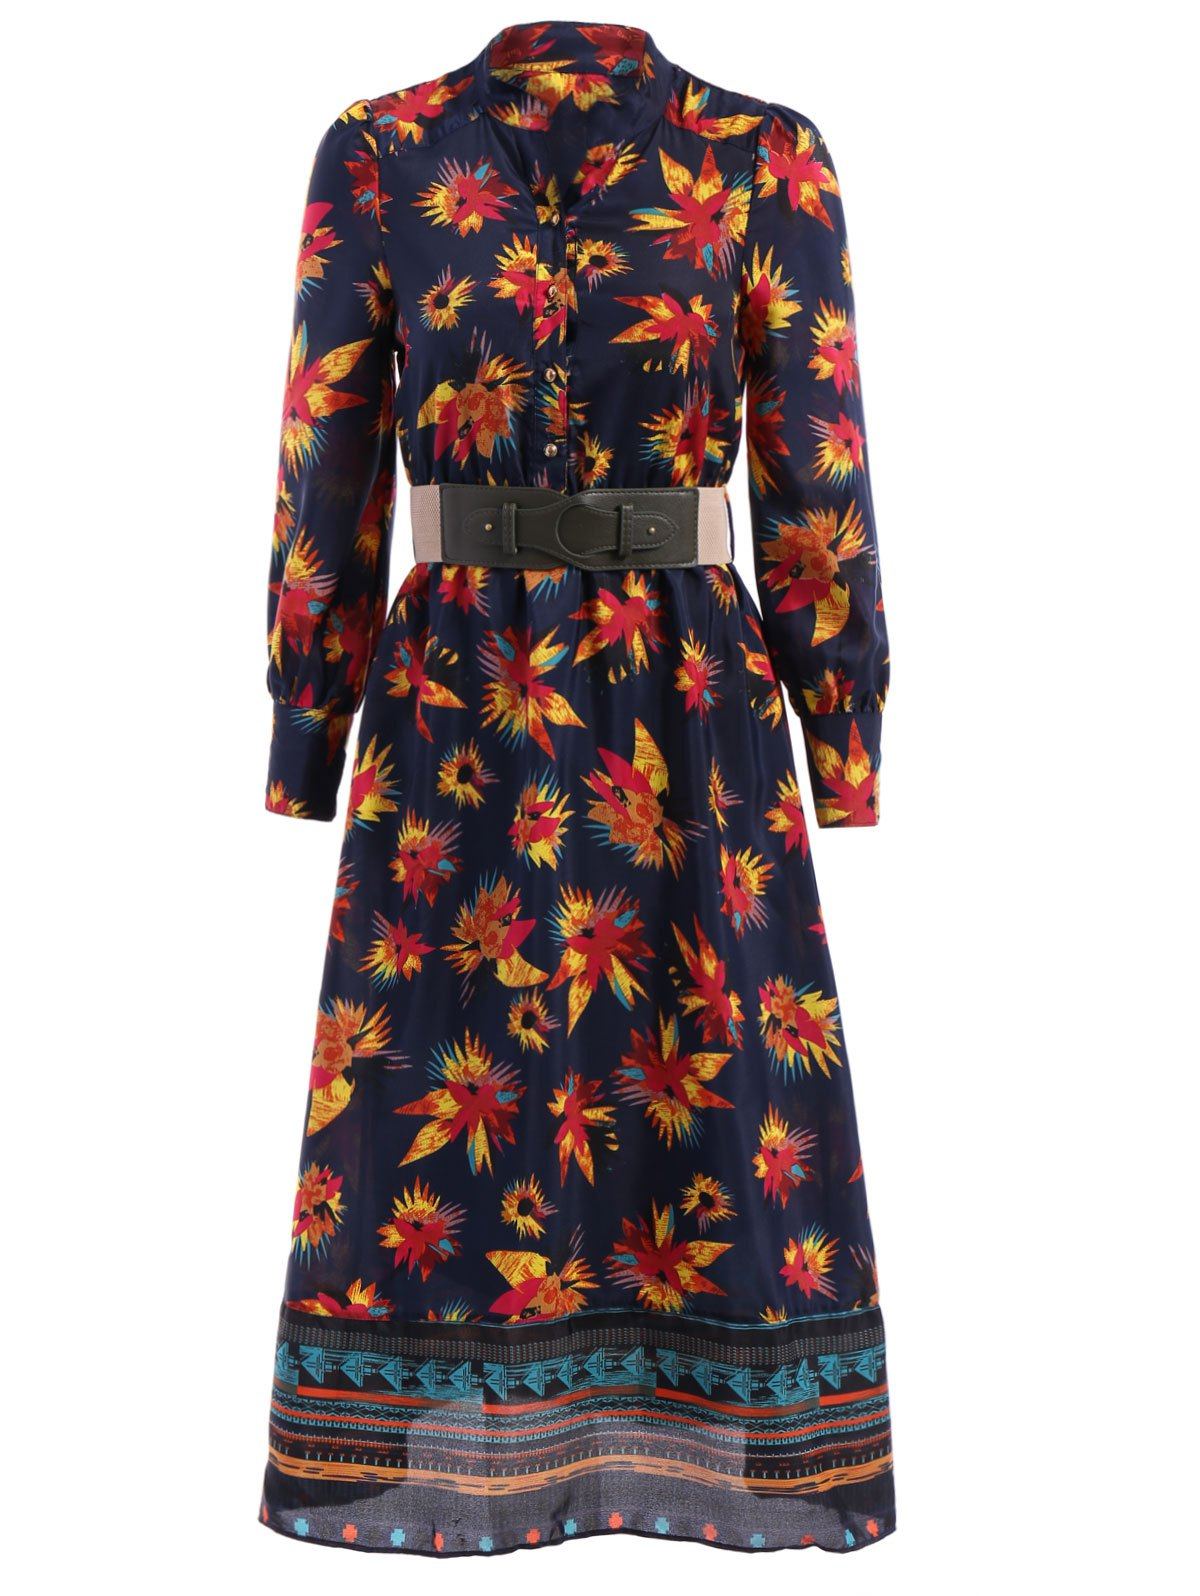 Bohemian Stand-Up Collar Long Sleeve Printed Belted Women's Dress